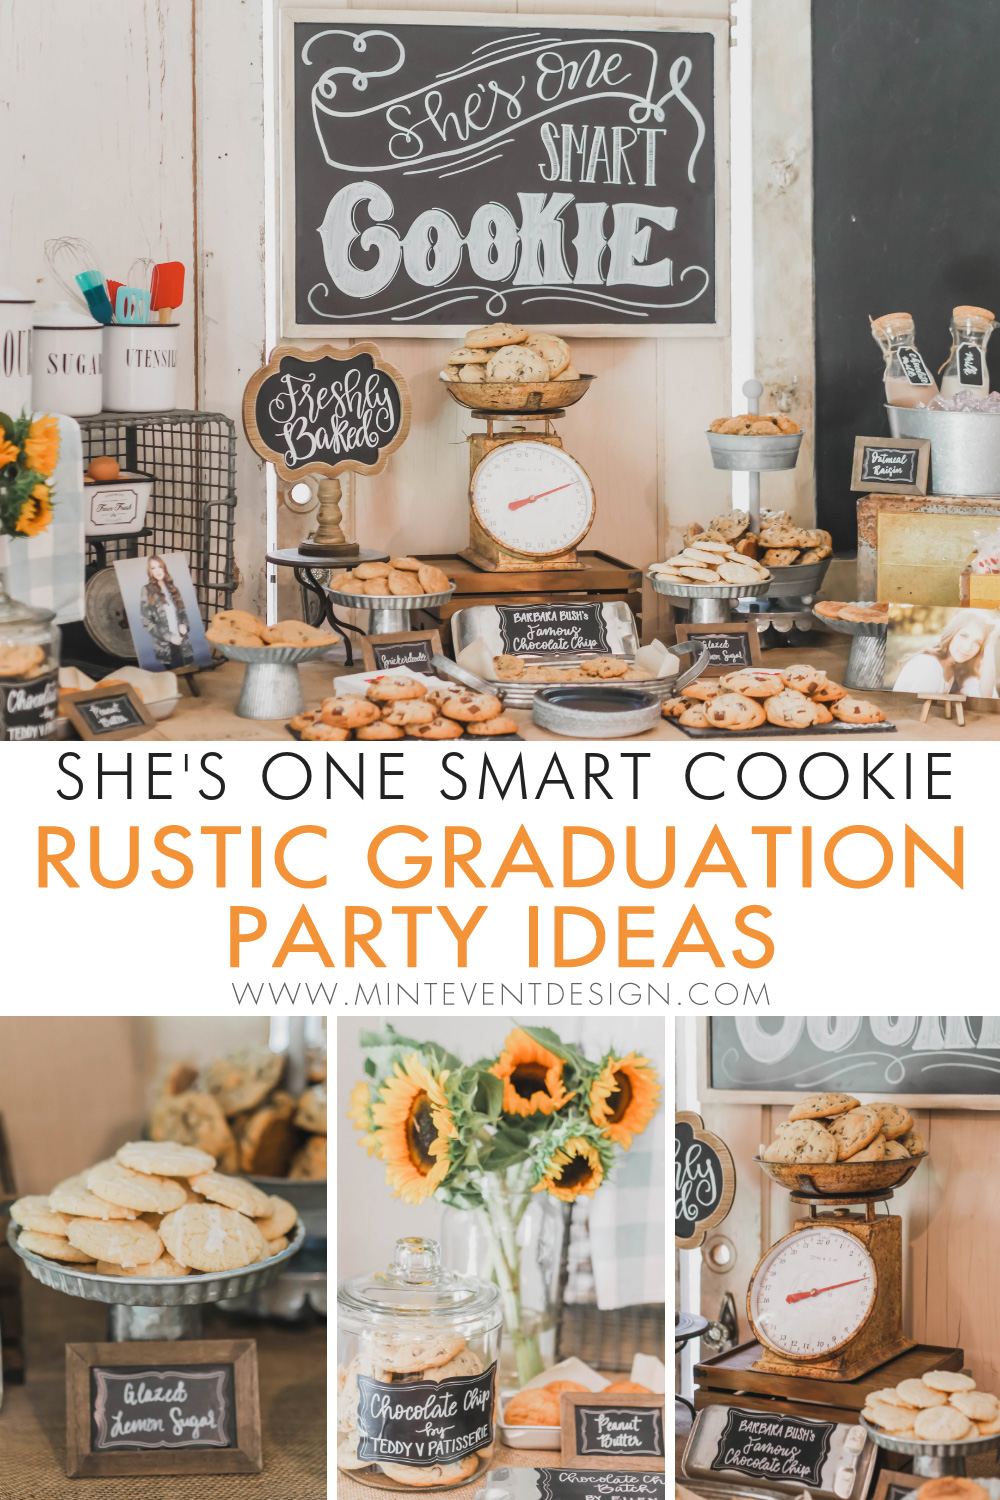 How to plan a One Smart Cookie Graduation Party with a vintage style cookie bar and lots of rustic touches throughout with hand lettered chalkboard signs. Come see the complete graduation party guide on Mint Event Design, a party planner in Austin Texas www.minteventdesign.com #graduationparty #graduationpartyideas #partyideas #rusticpartyideas #partyinspiration #dessertbar #desserttable #chalkboardsigns